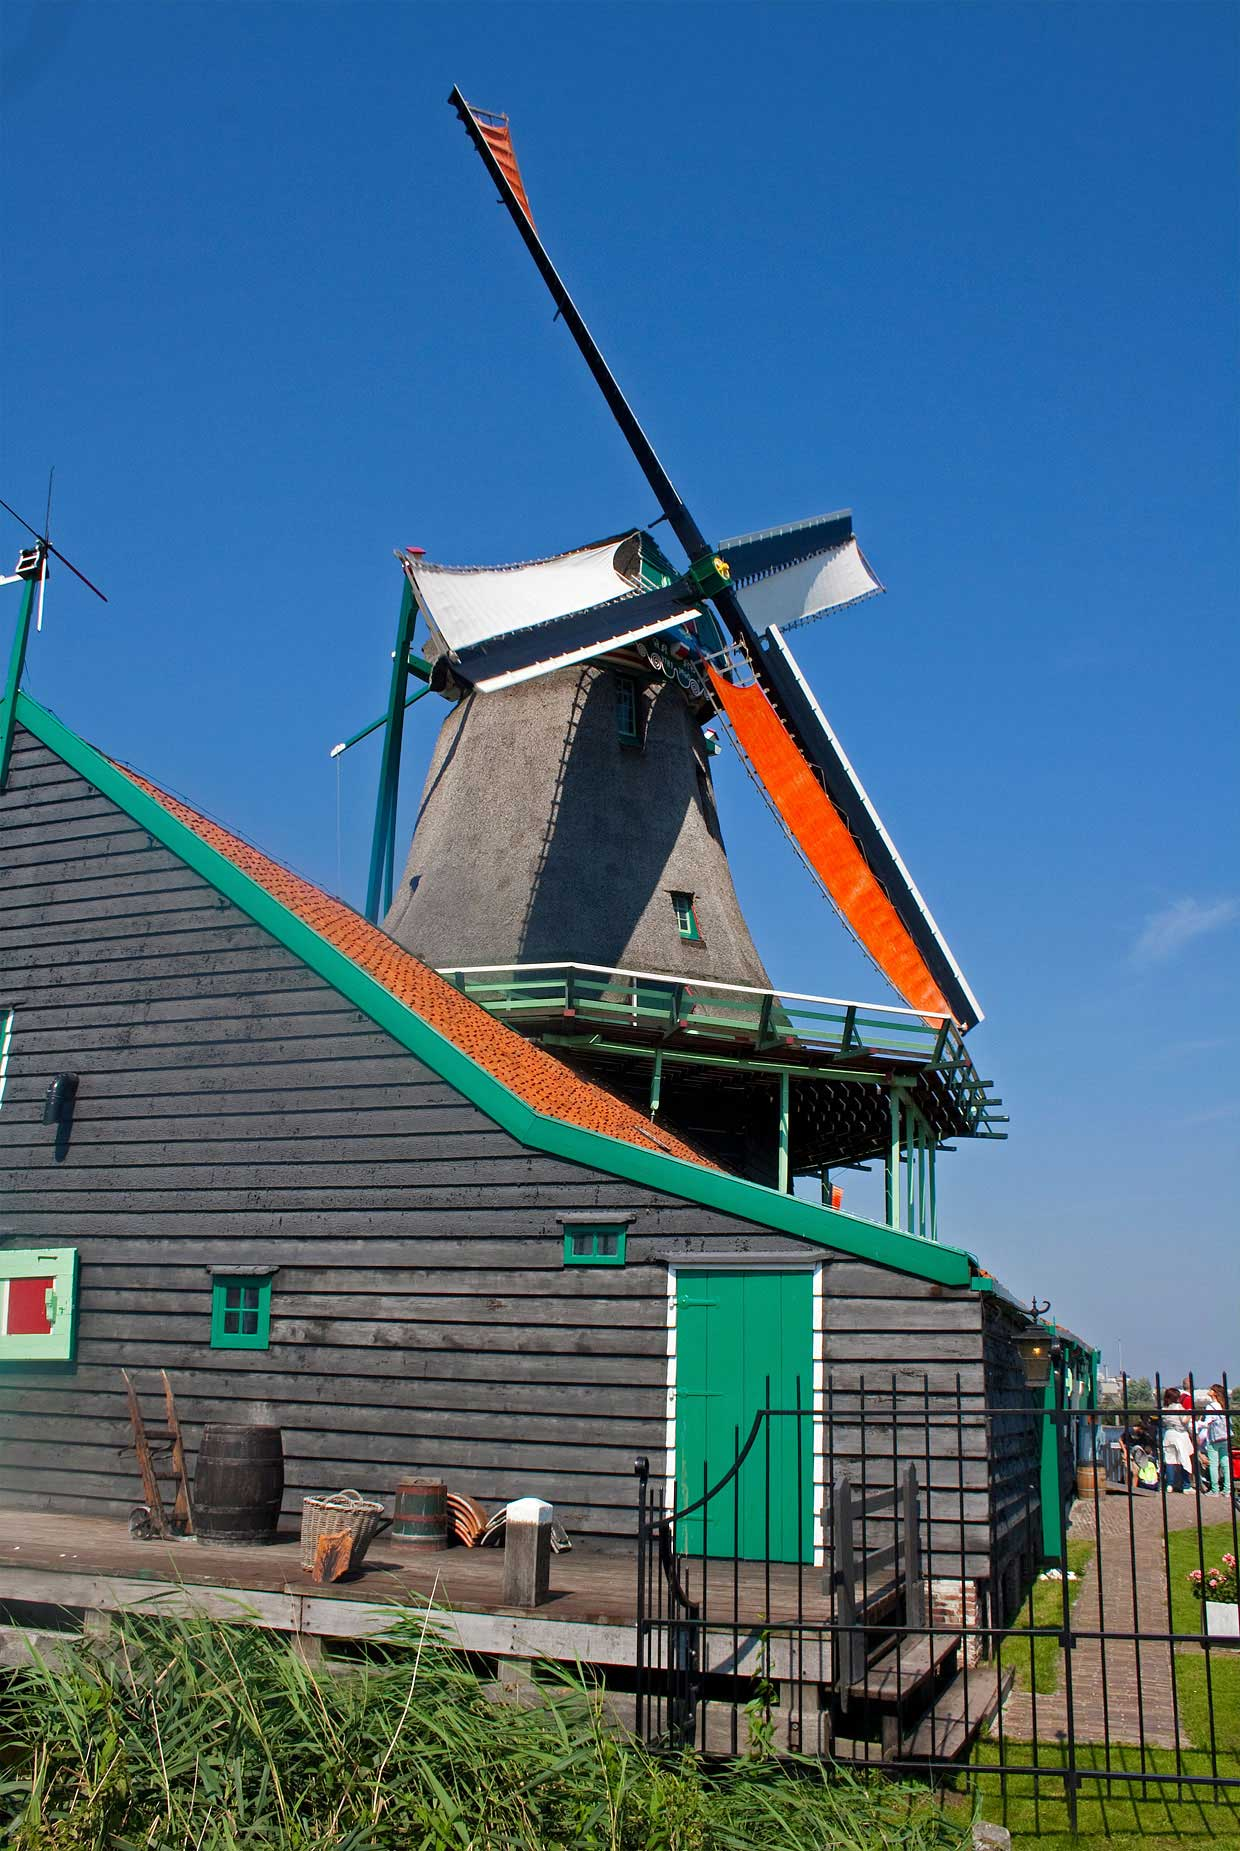 windmill-de-kat-IMG_5799 The Windmills of the Zaanse Schans